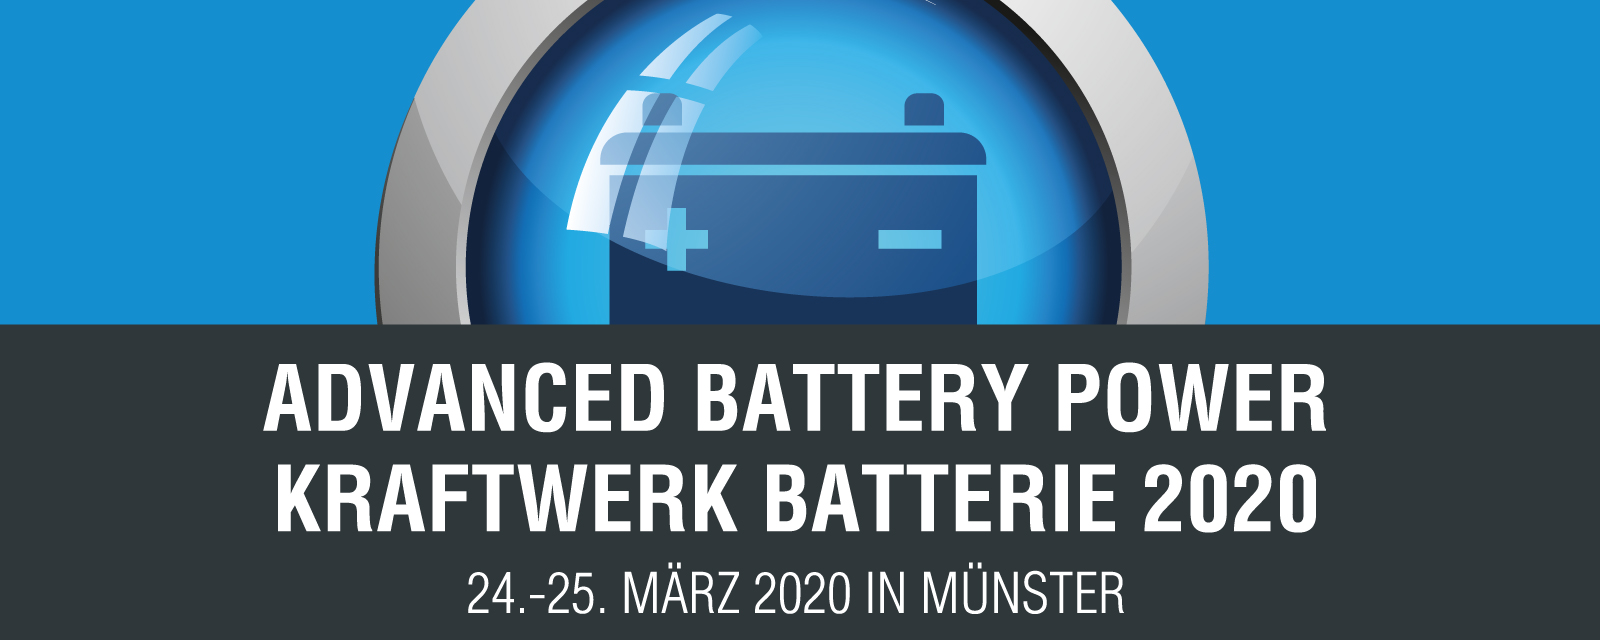 Advanced Battery Power – Kraftwerk Batterie 2020